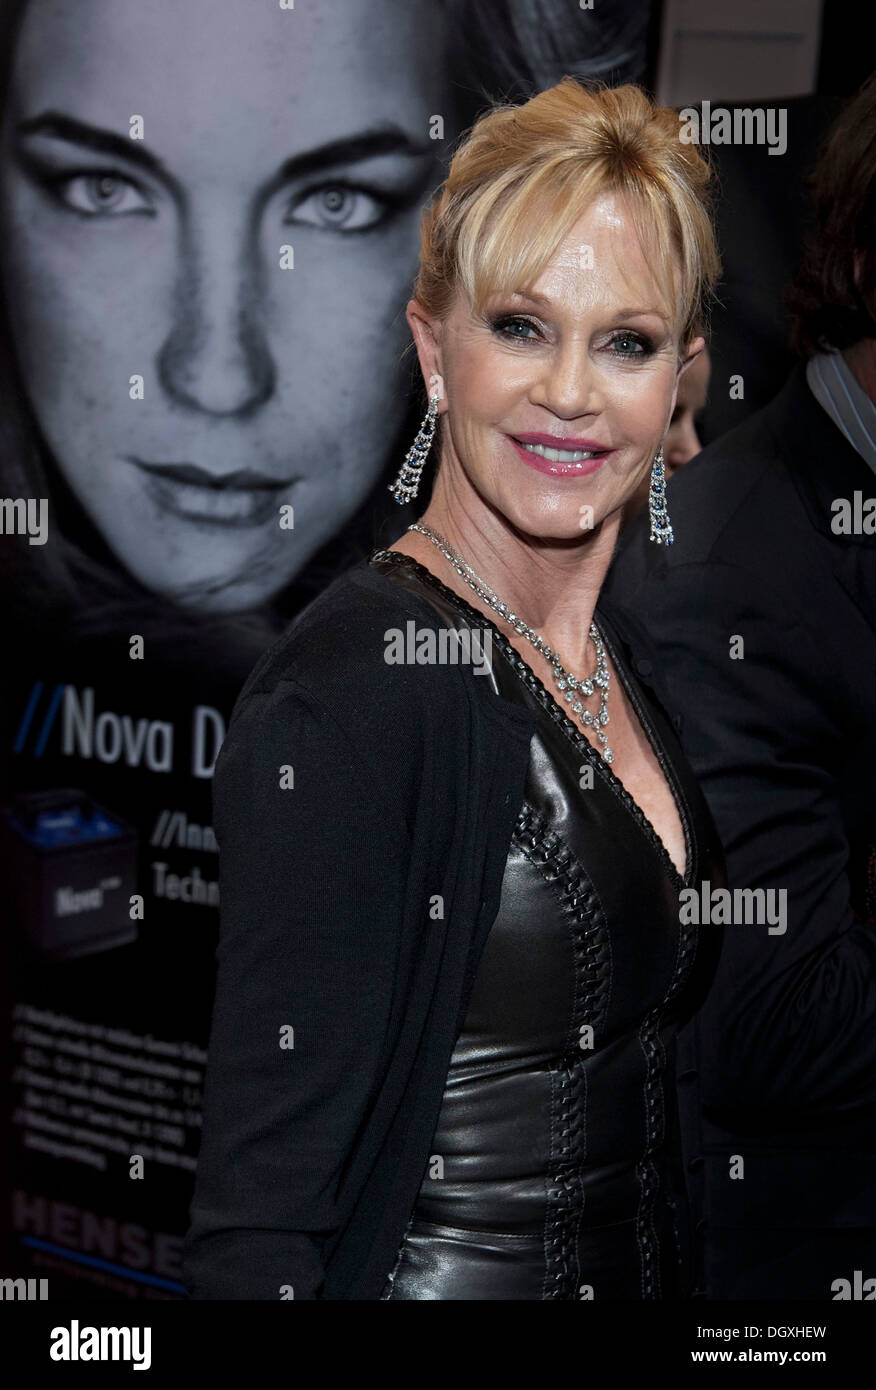 Actress Melanie Griffith at the Filmfest in Munich, Bavaria - Stock Image